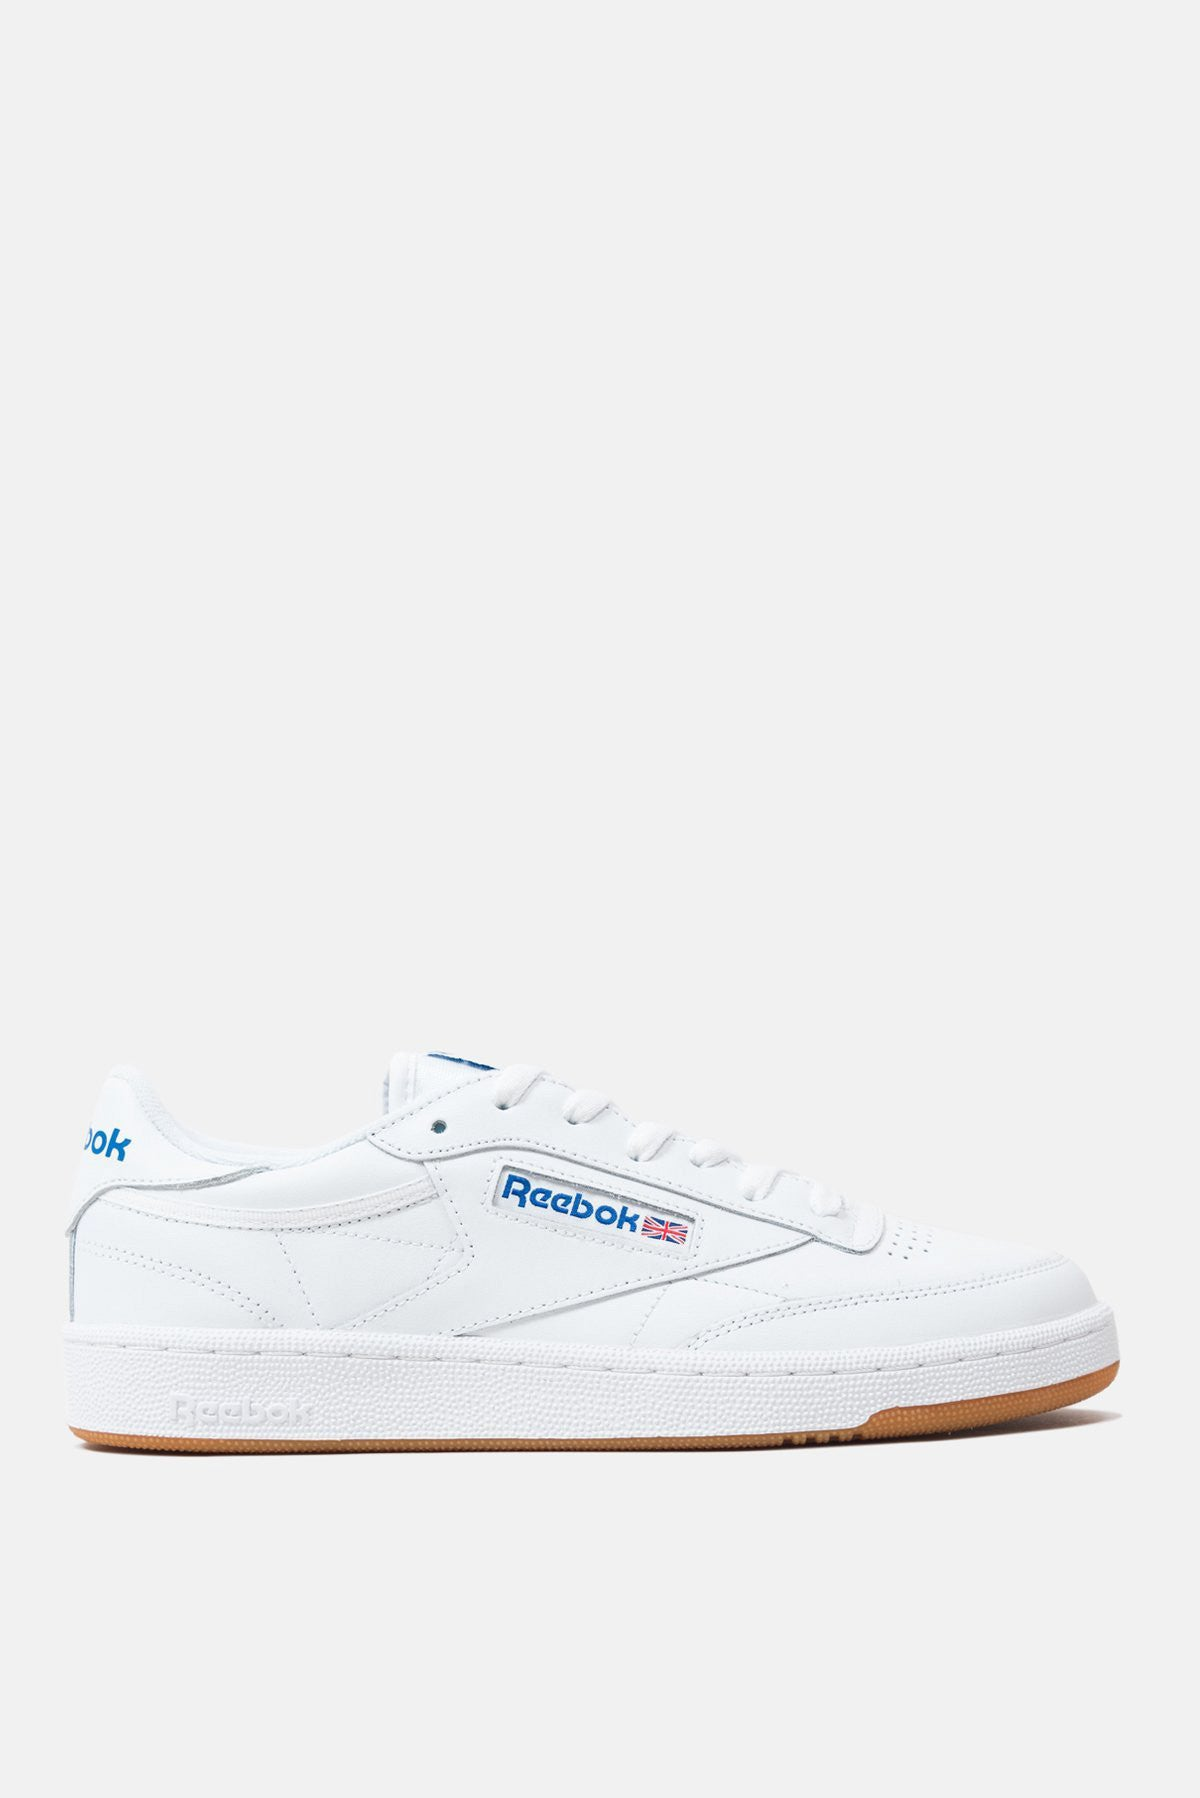 edeecb6242c Reebok Classics Club C 85 Shoes available from Priory